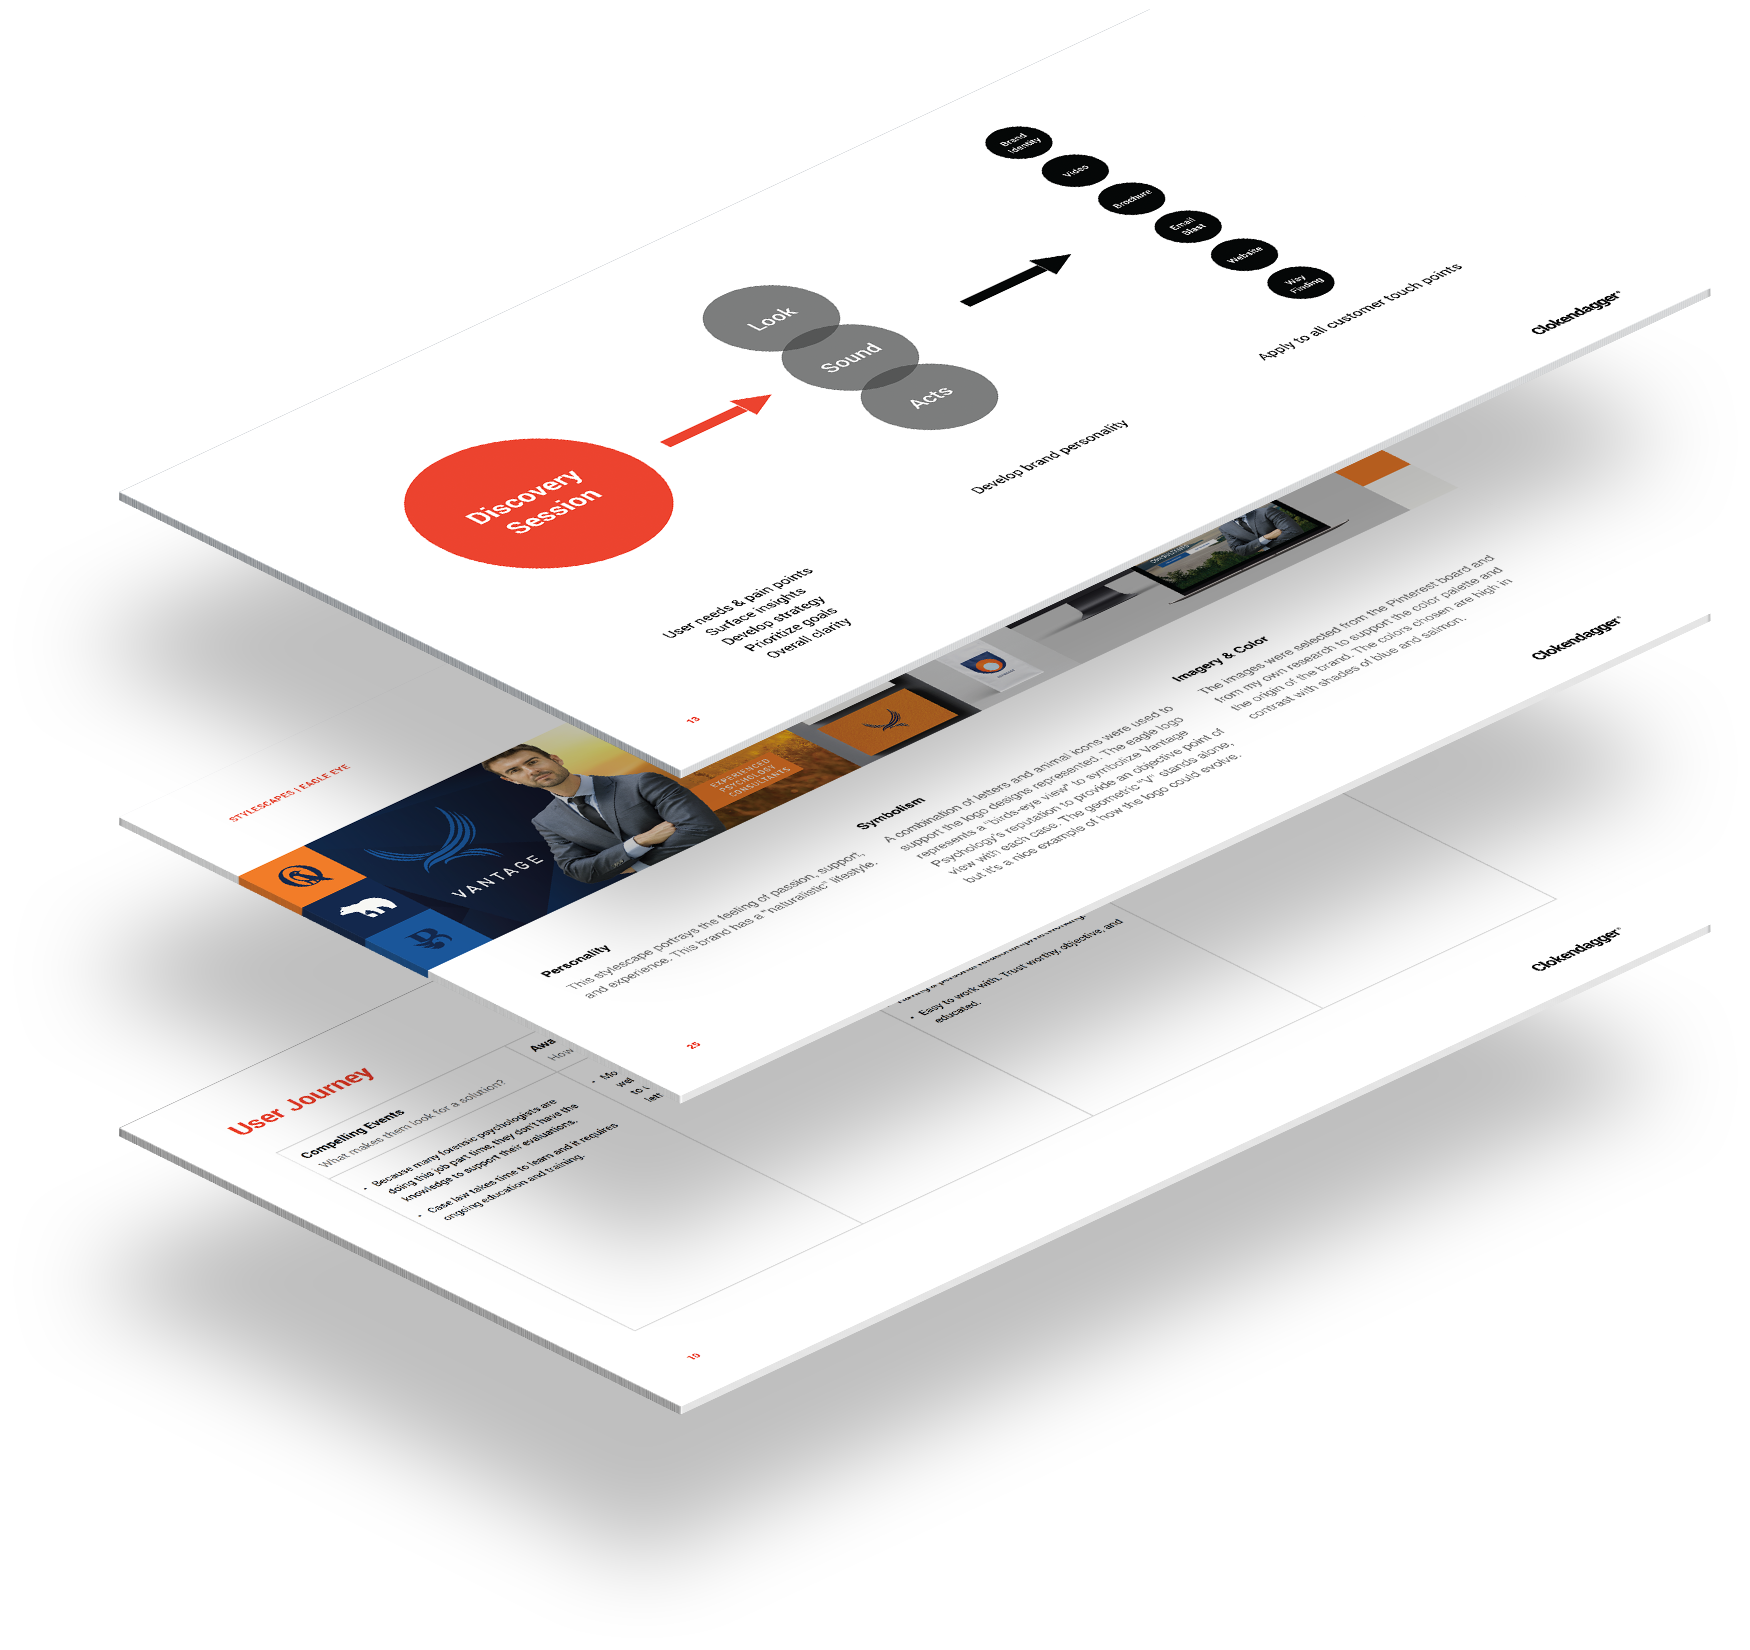 Brand strategy, including a discovery session, user profiles, and stylescapes.